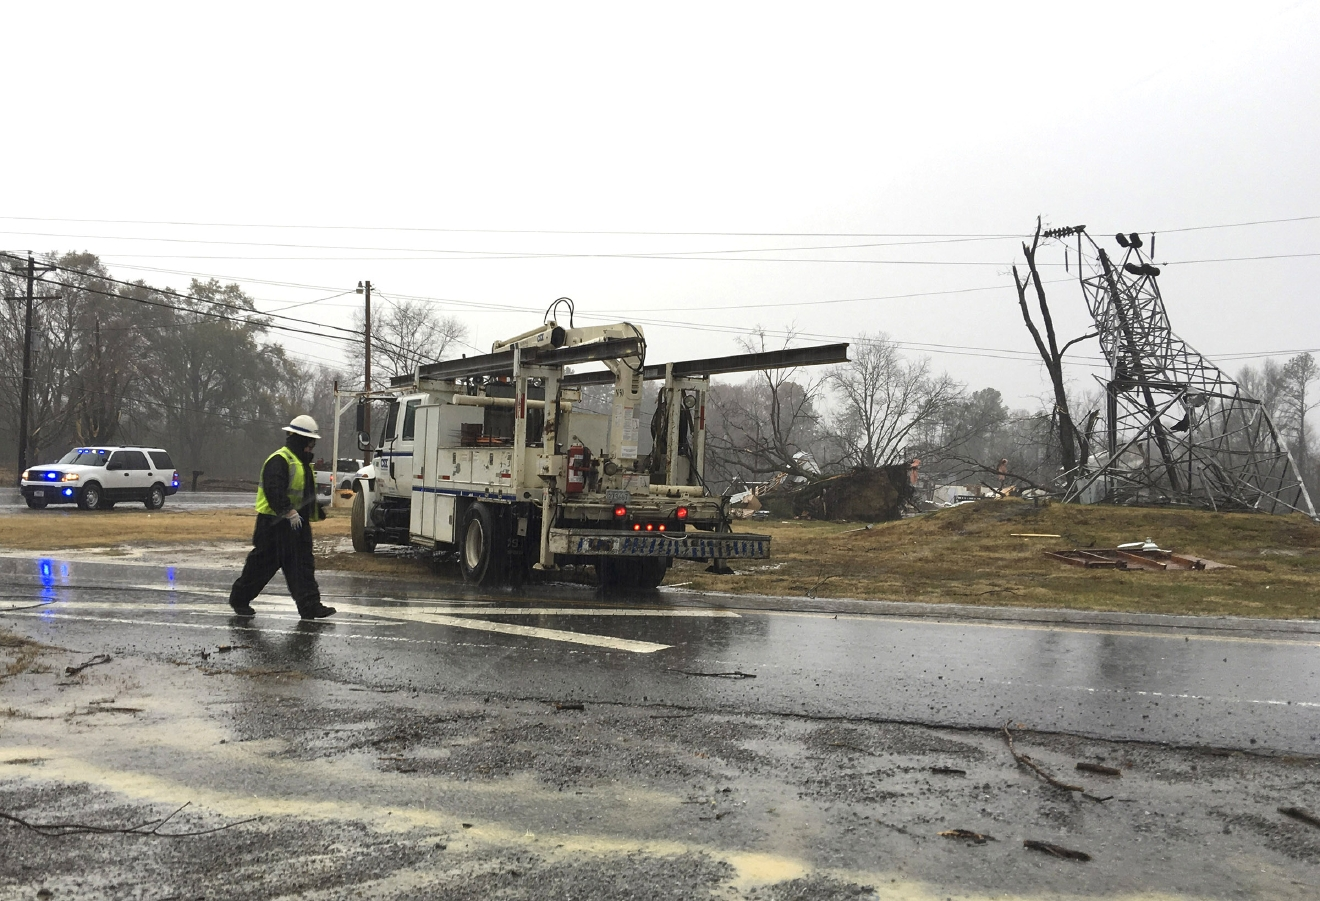 Responders prepare to leave the site of a damaged transformer in Benton Tenn., on Wednesday, Nov. 30, 2016.  Thunderstorms dumped much-needed rain on eastern Tennessee overnight as thousands of people waited anxiously for news about their homes after wildfires tore through the area.  (Paul Leach/Chattanooga Times Free Press via AP)